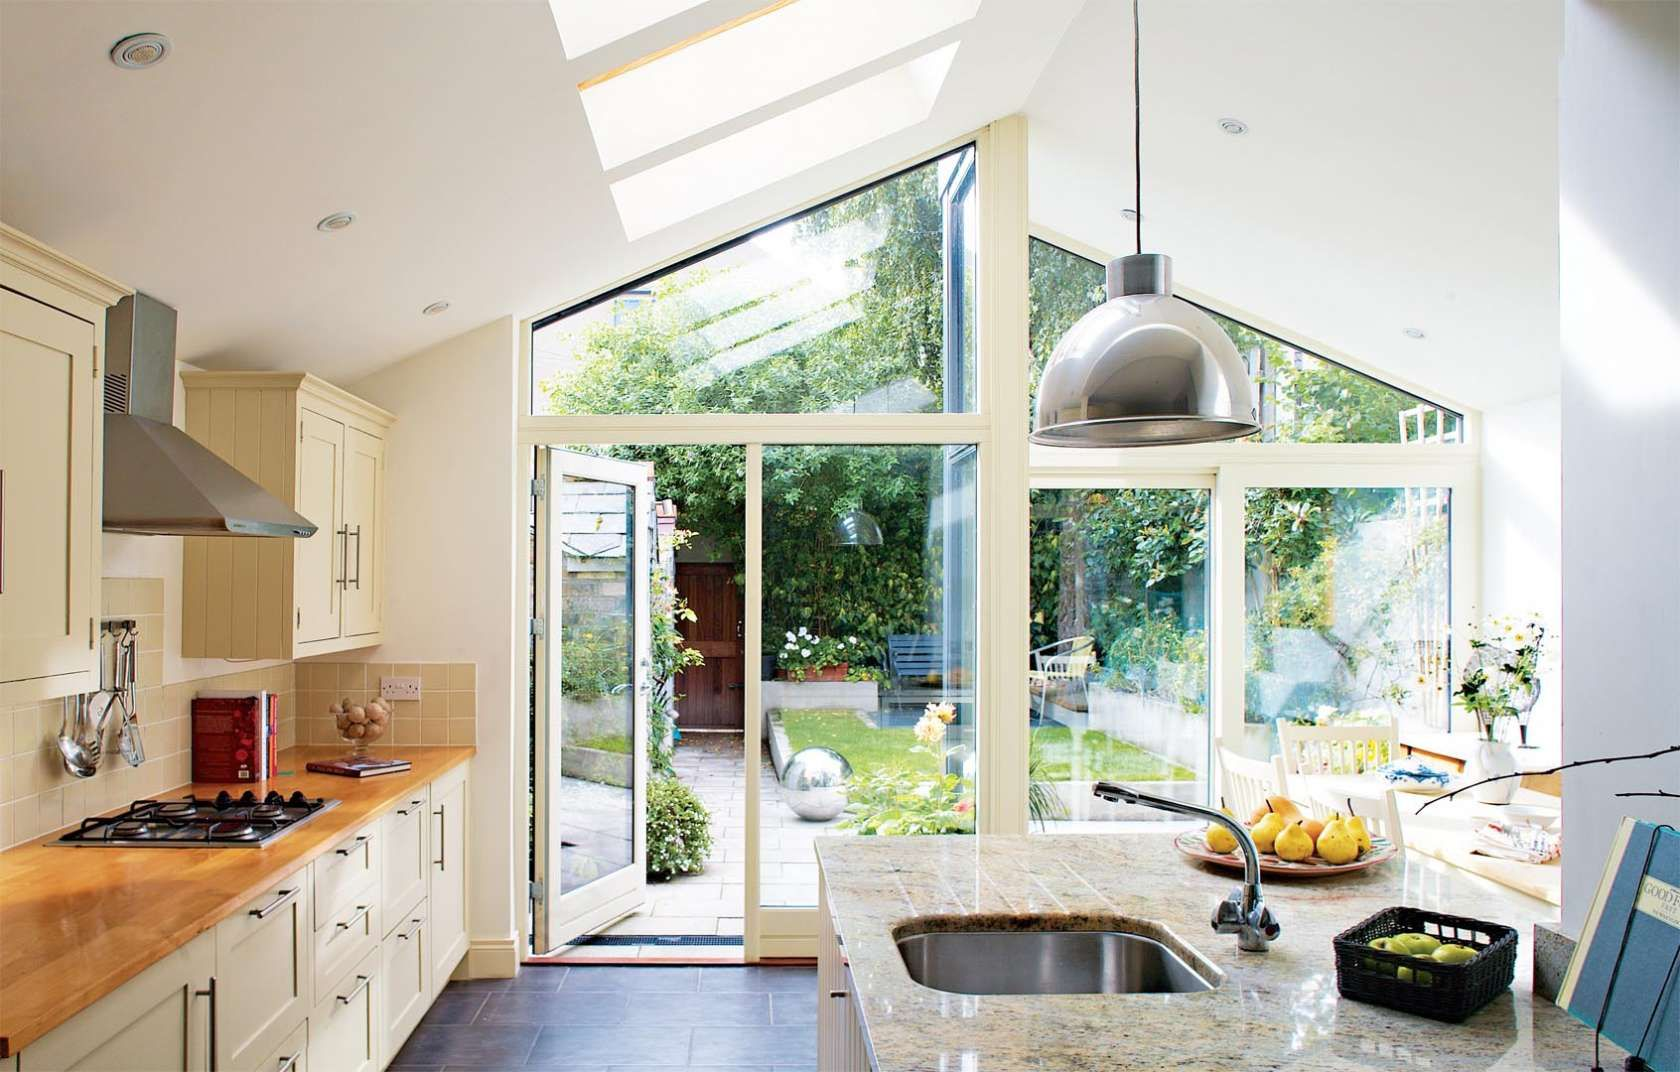 terraced house kitchen extension - Google Search | Kitchen ...